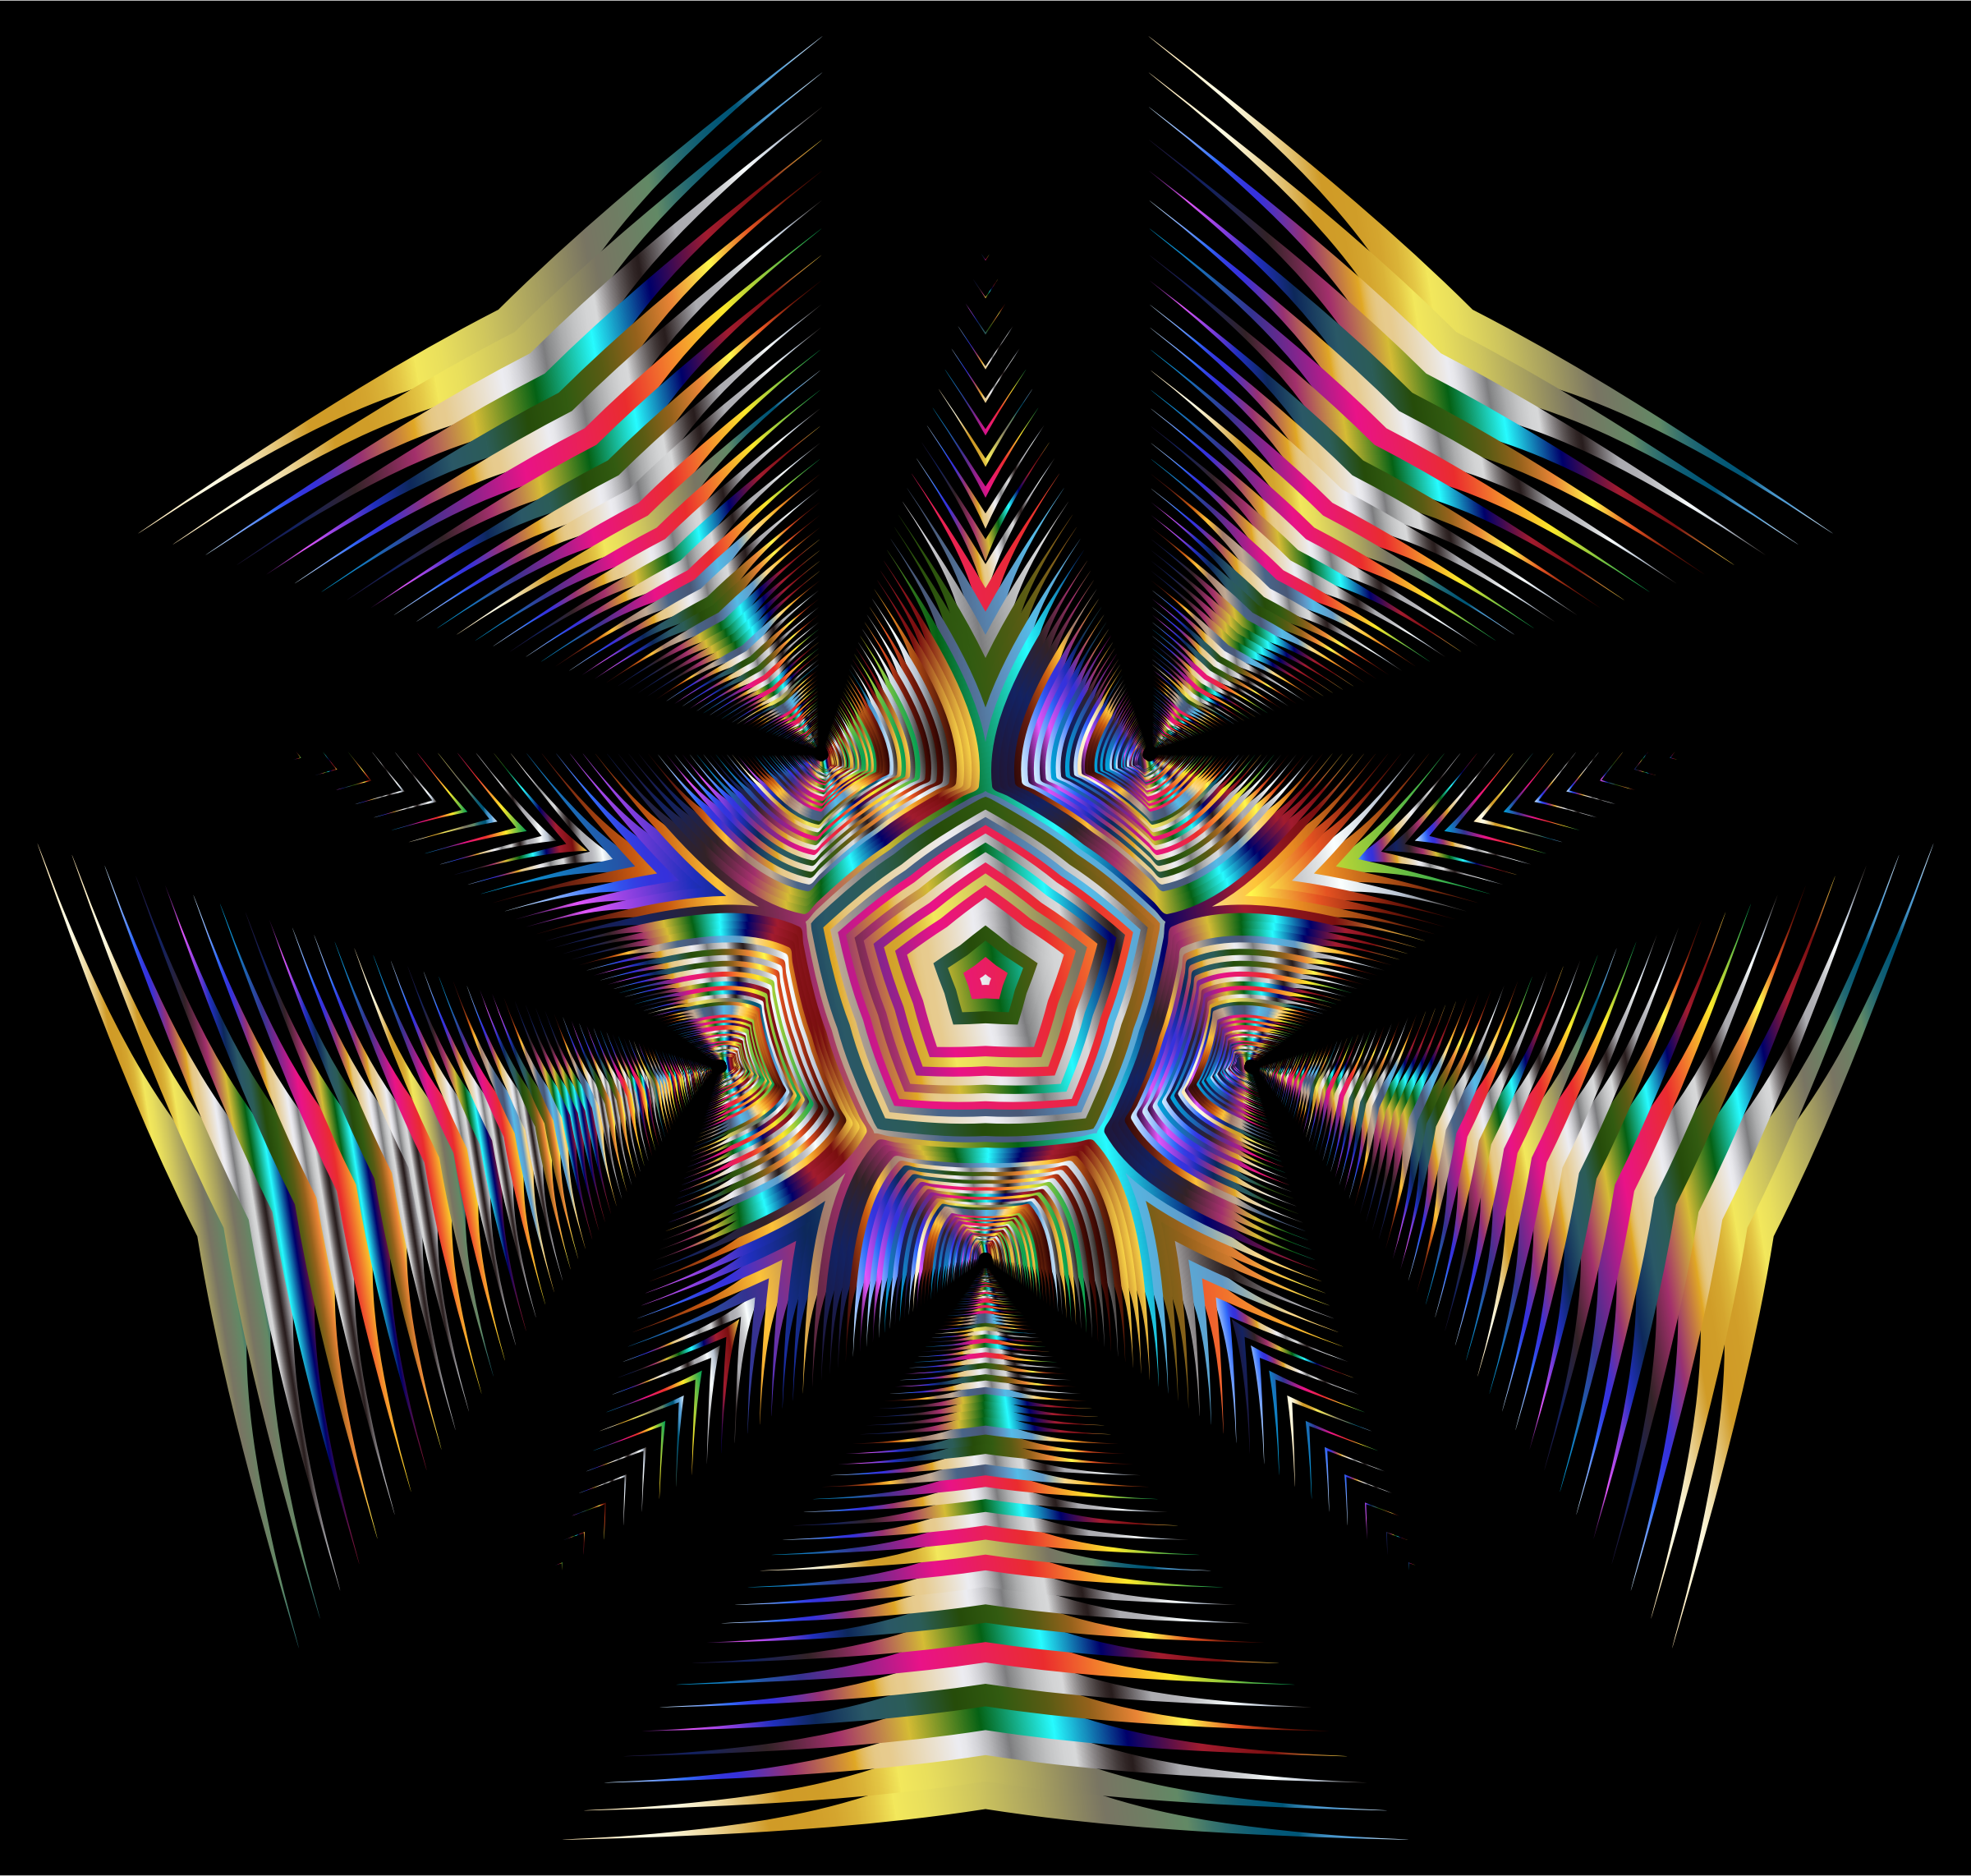 Prismatic Star Line Art 2 by GDJ